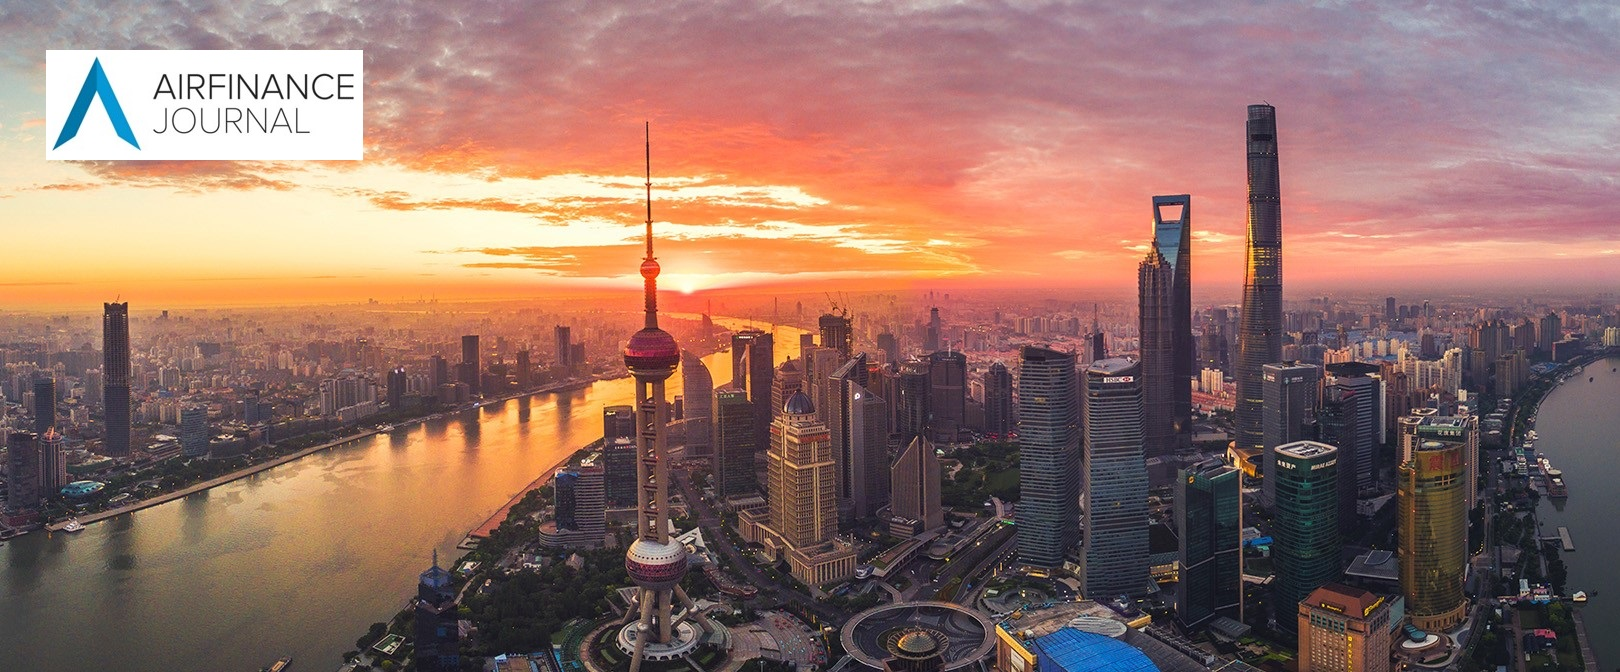 Airfinance China Conference 2018 – June 14-15, Shanghai